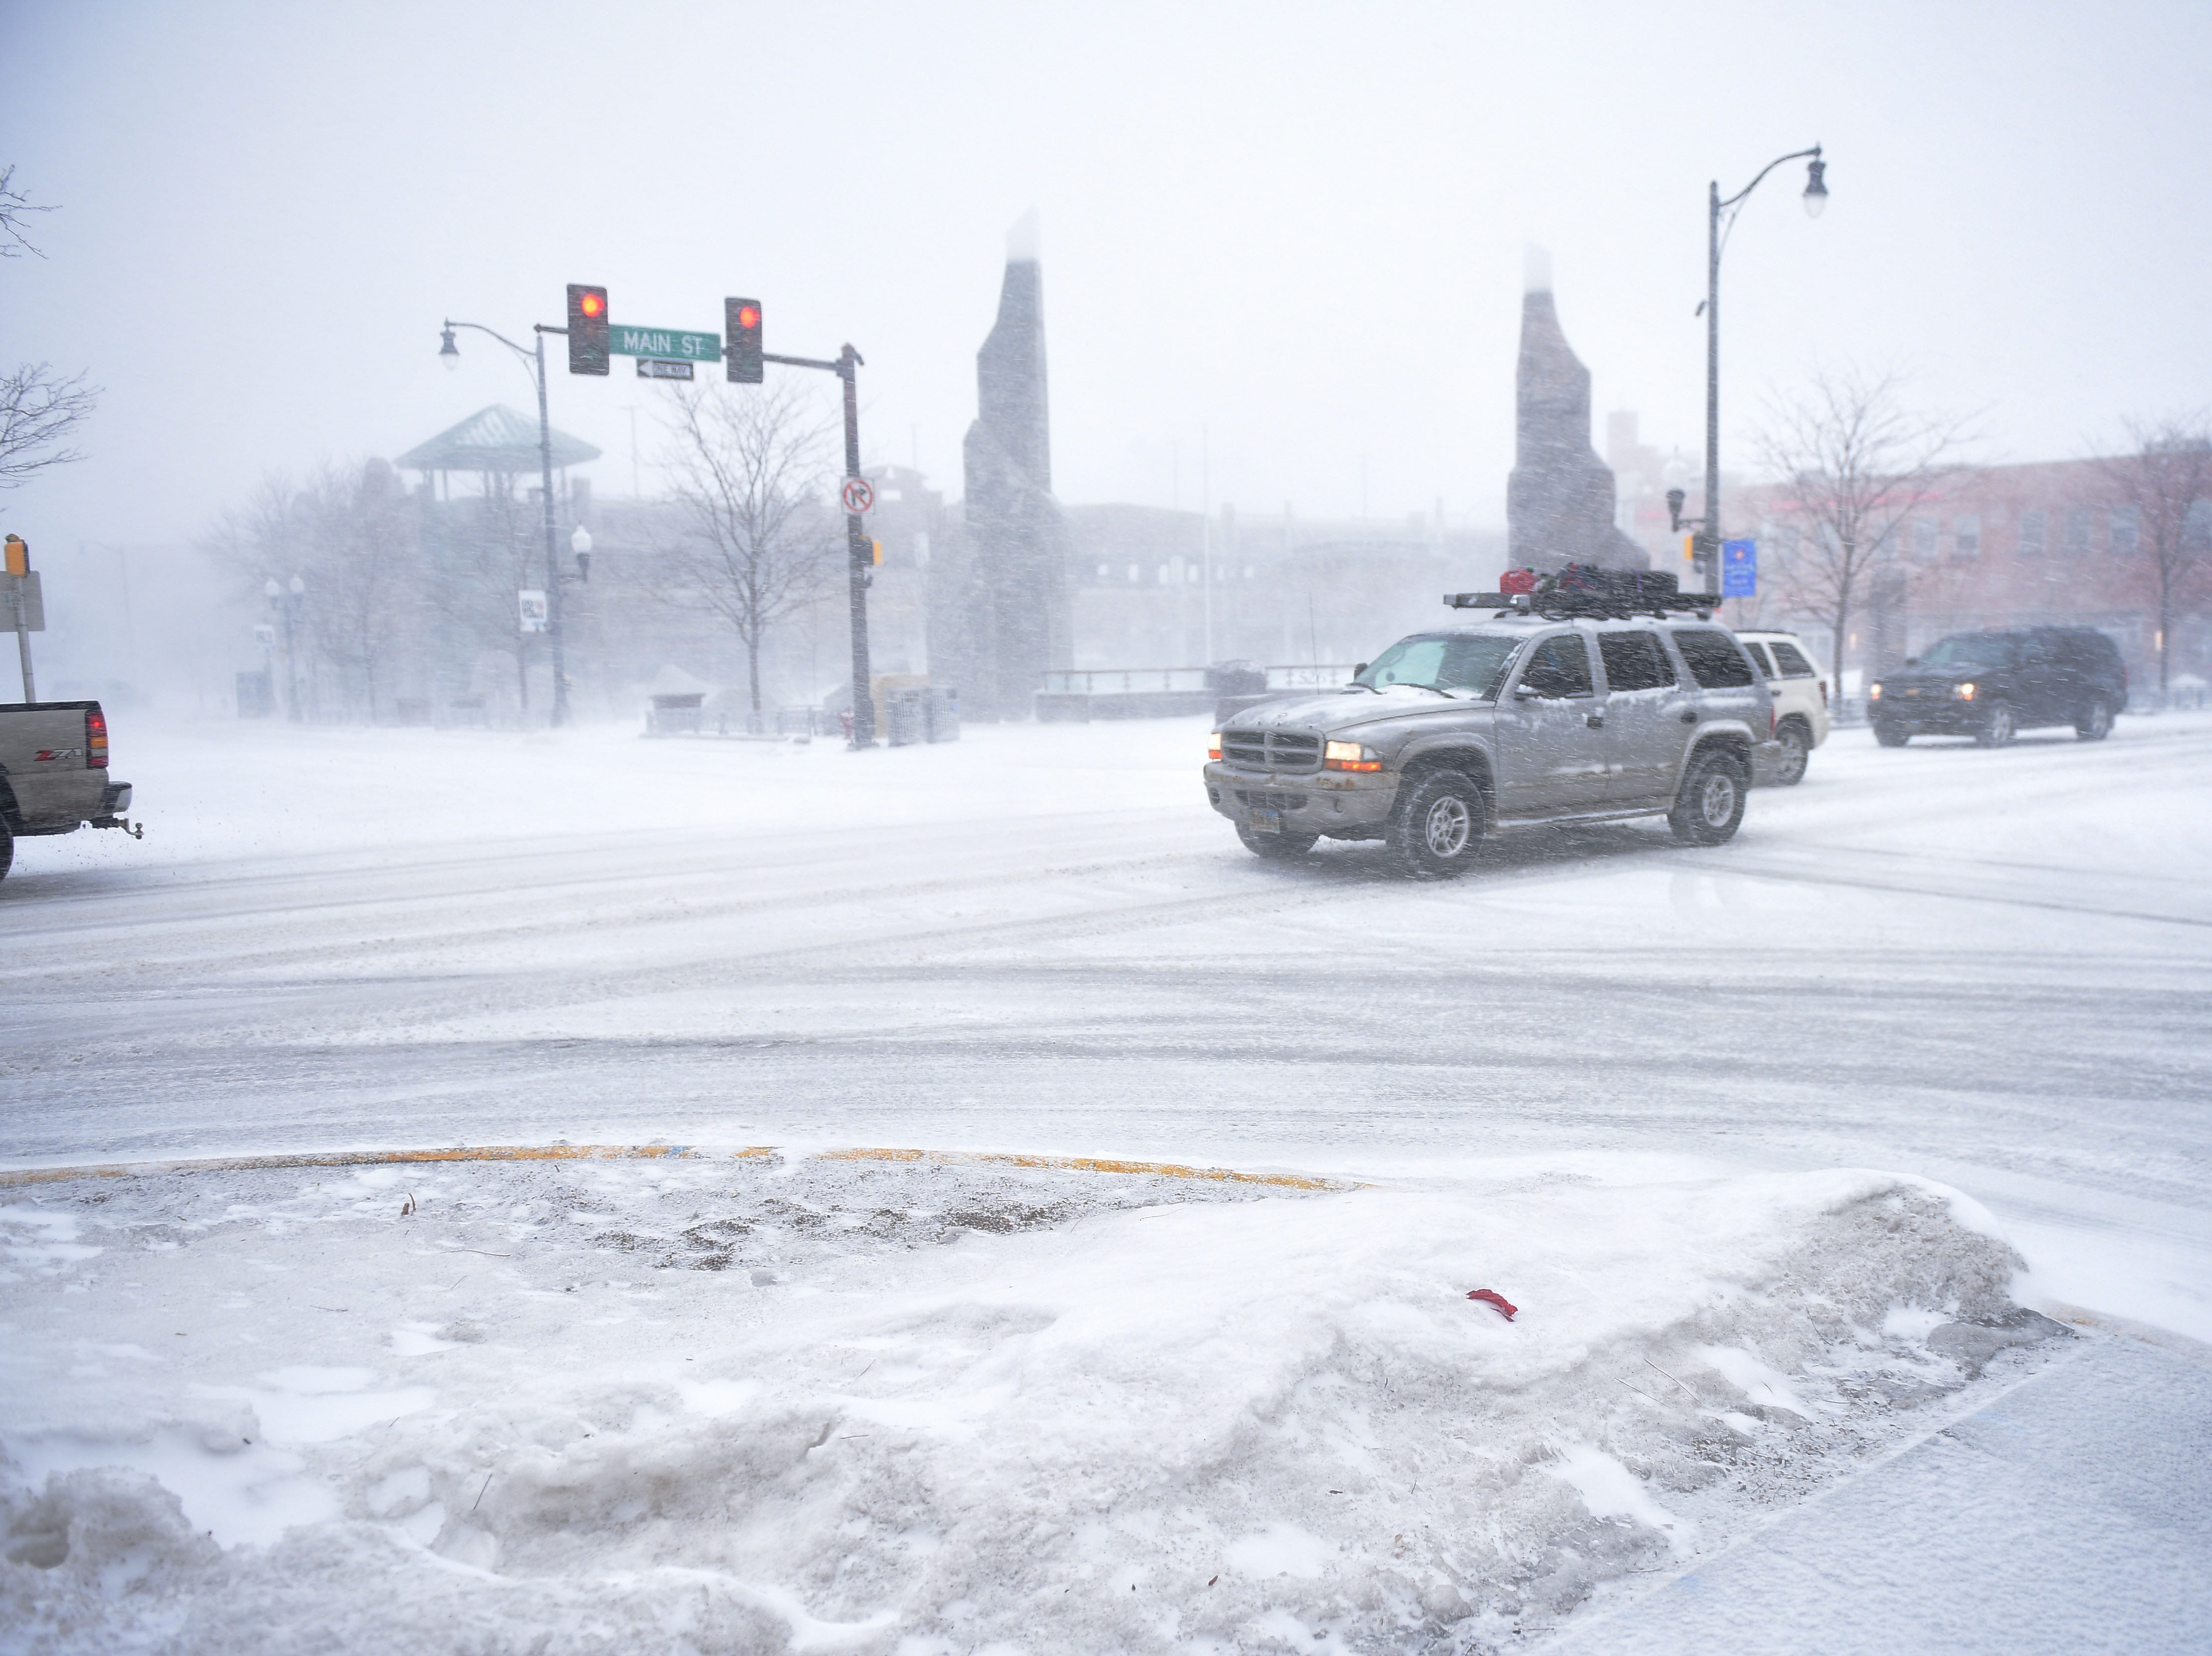 Drivers slowly make their way around downtown during a blizzard in Rapid City Wednesday, March 13, in Rapid City, S.D.